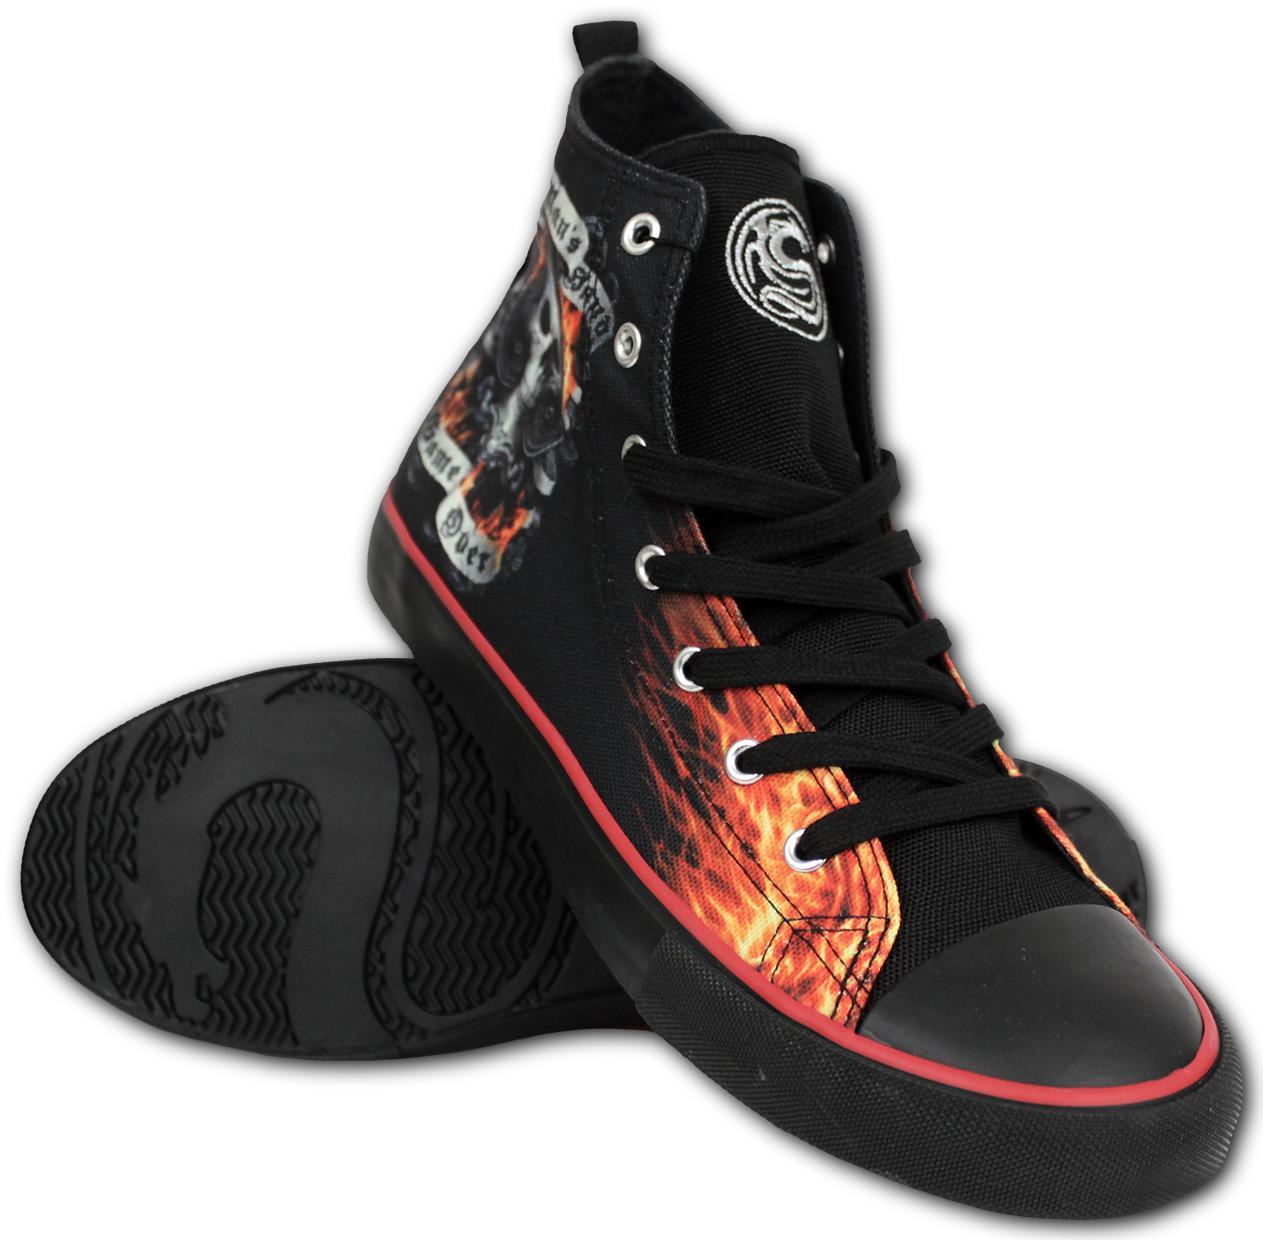 Poker Ace Grim Reaper Men's High-Top Sneakers